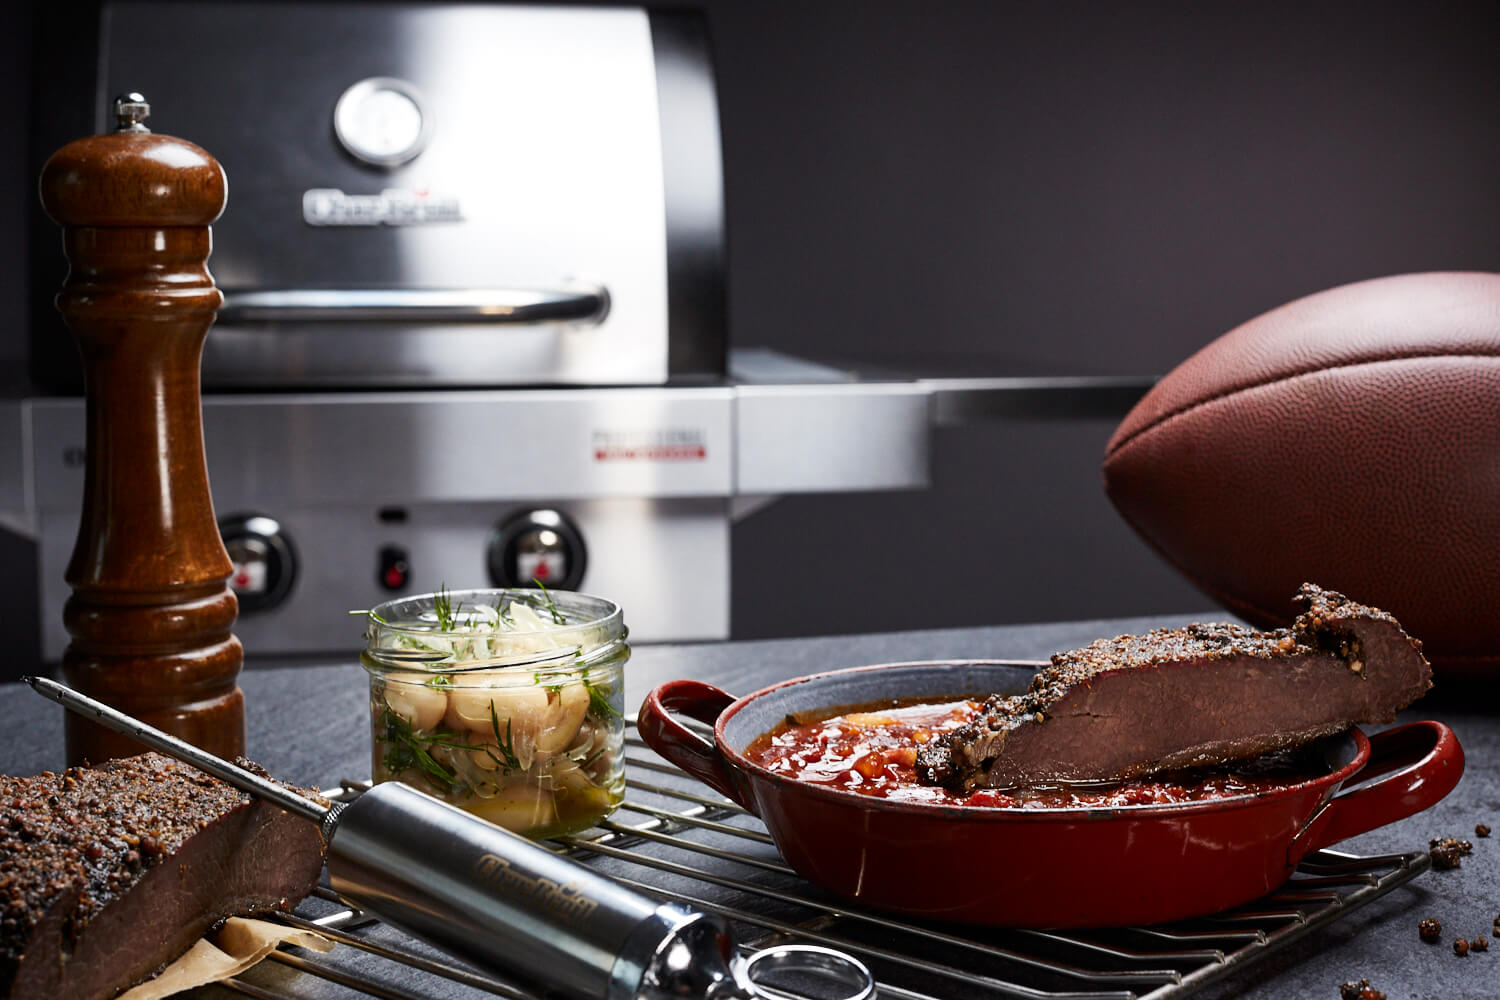 New Orleans Saints - Brisket and Beans